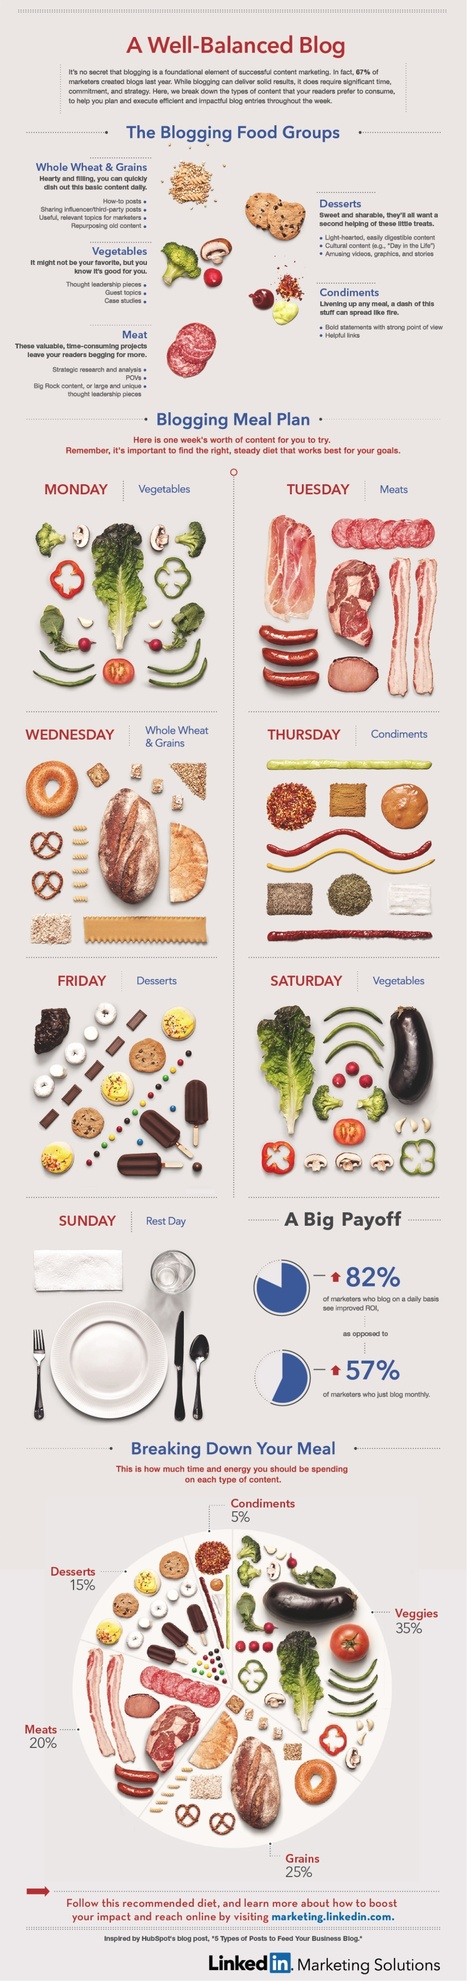 The Blogging Food Groups: A Well-Balanced Diet of Content [INFOGRAPHIC] | The Social Media Learning Lab | Scoop.it